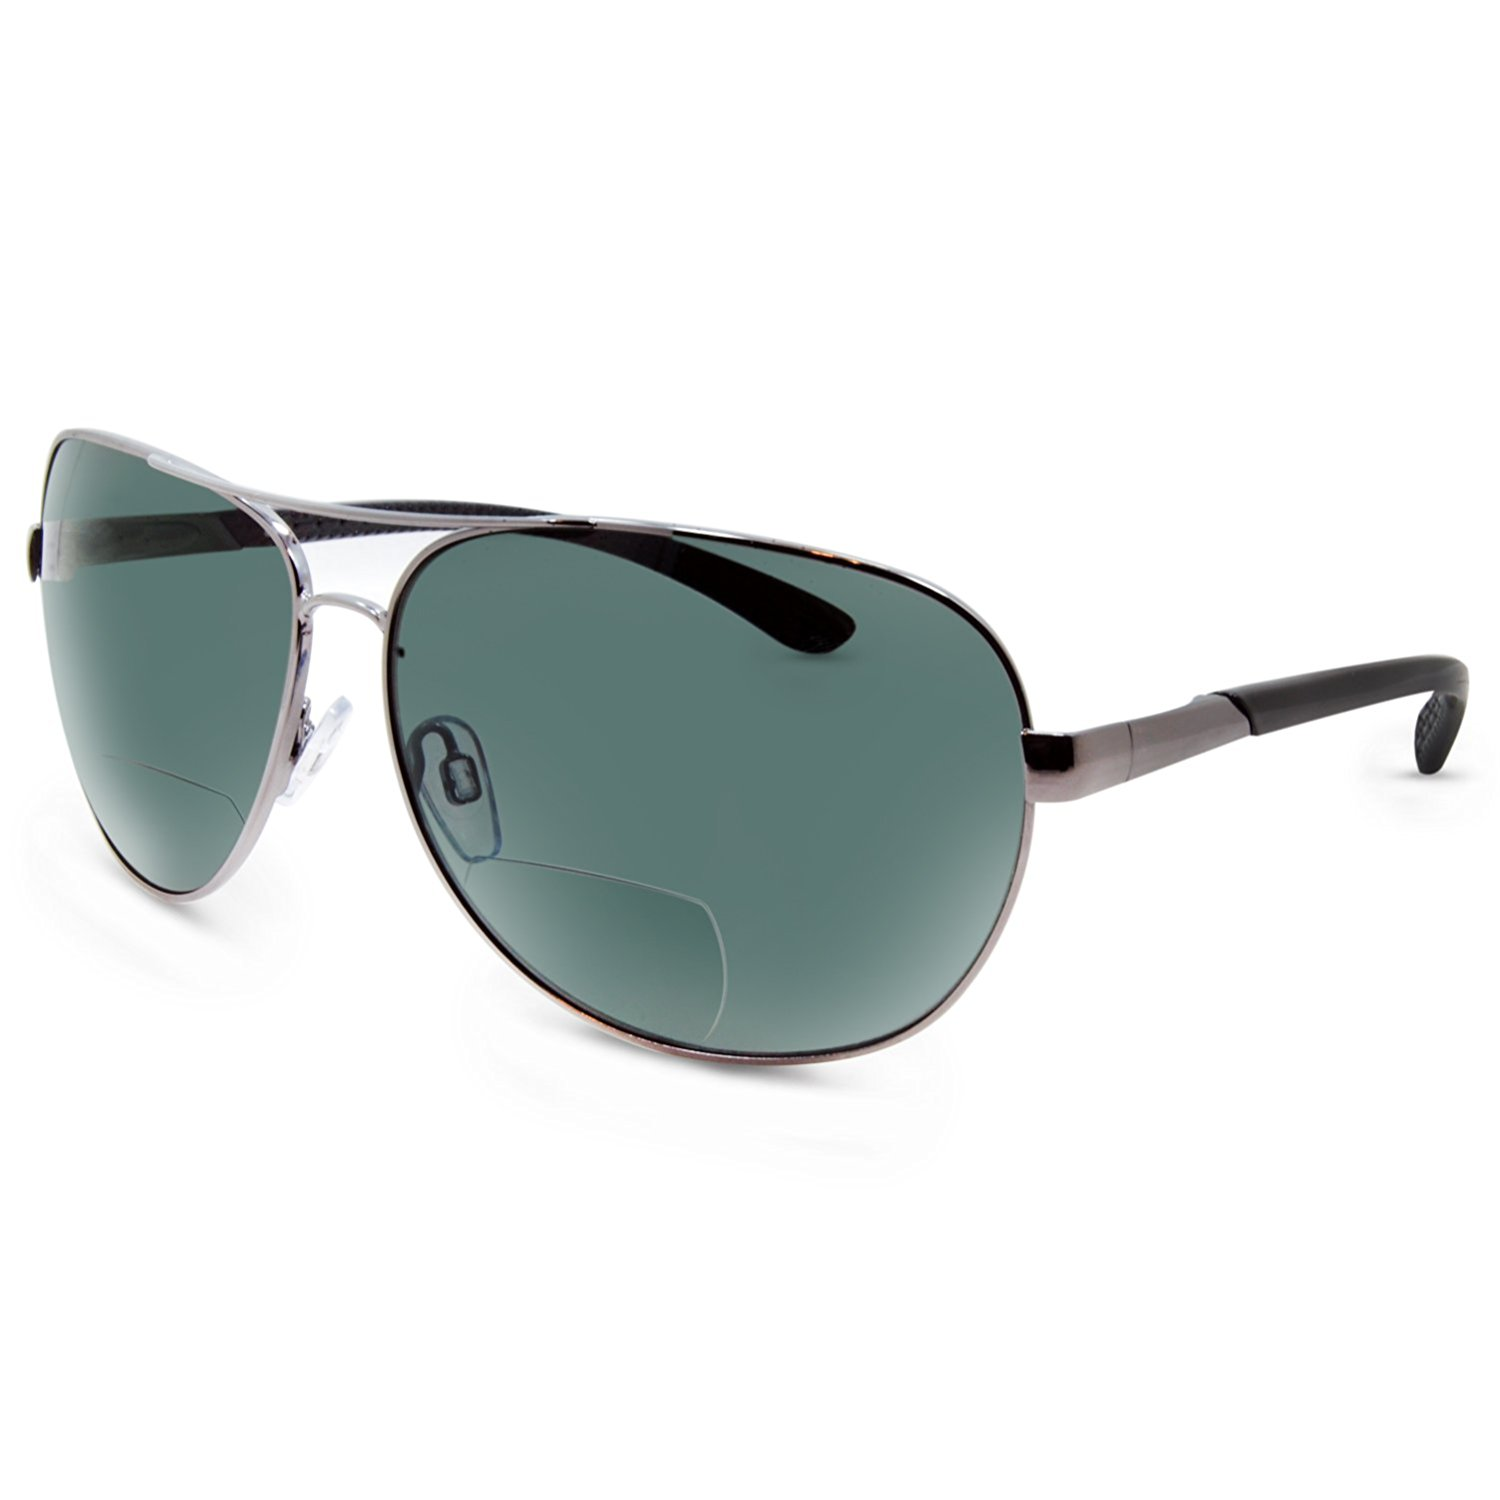 a99e6506d6 Get Quotations · In Style Eyes C Moore Polarized Aviator Nearly Invisible  Line Bifocal Sunglasses